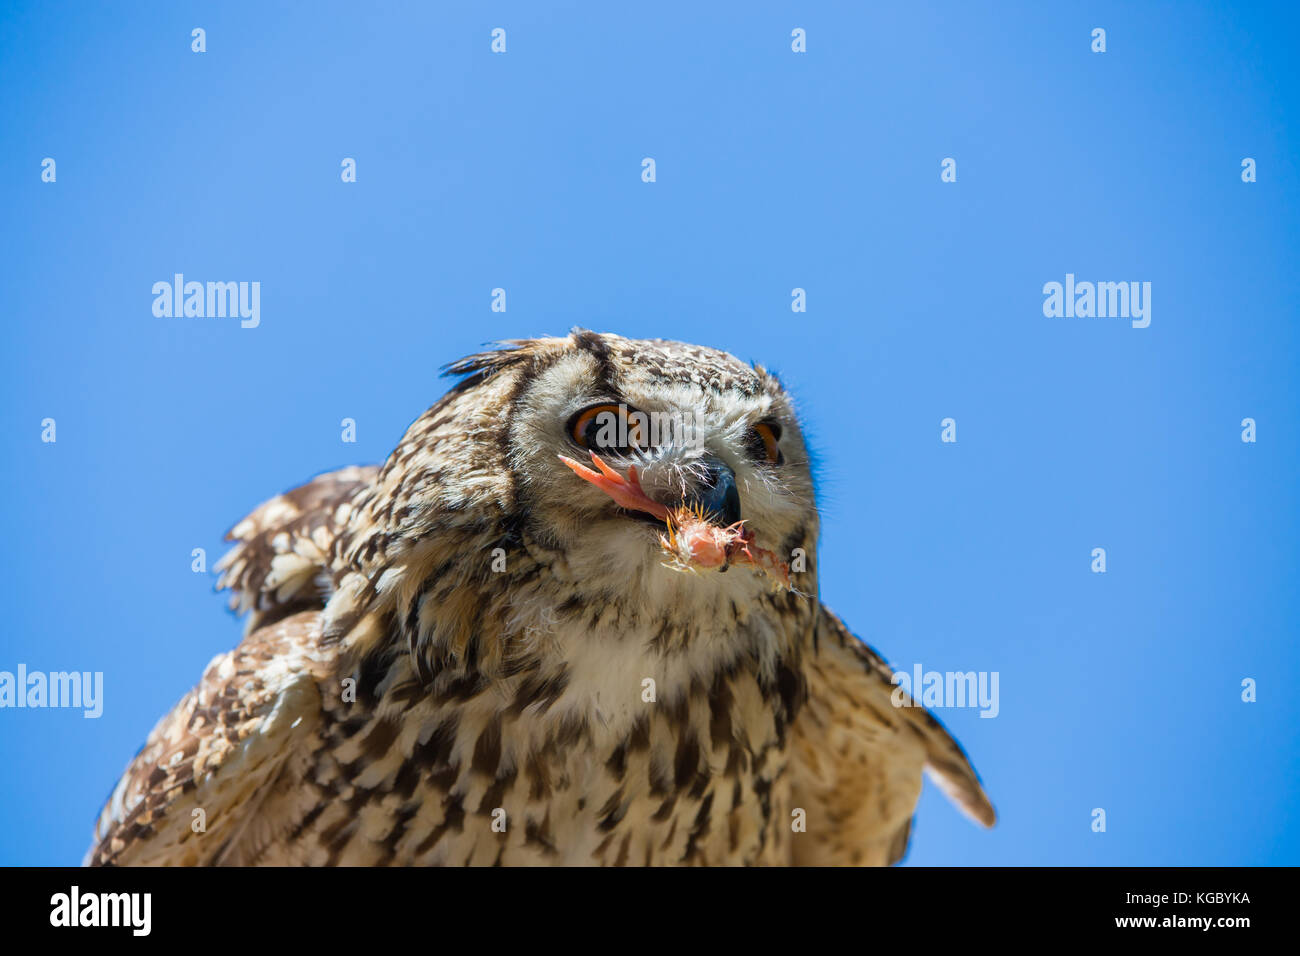 Bubo bubo - Real owl while eating a chick. - Stock Image